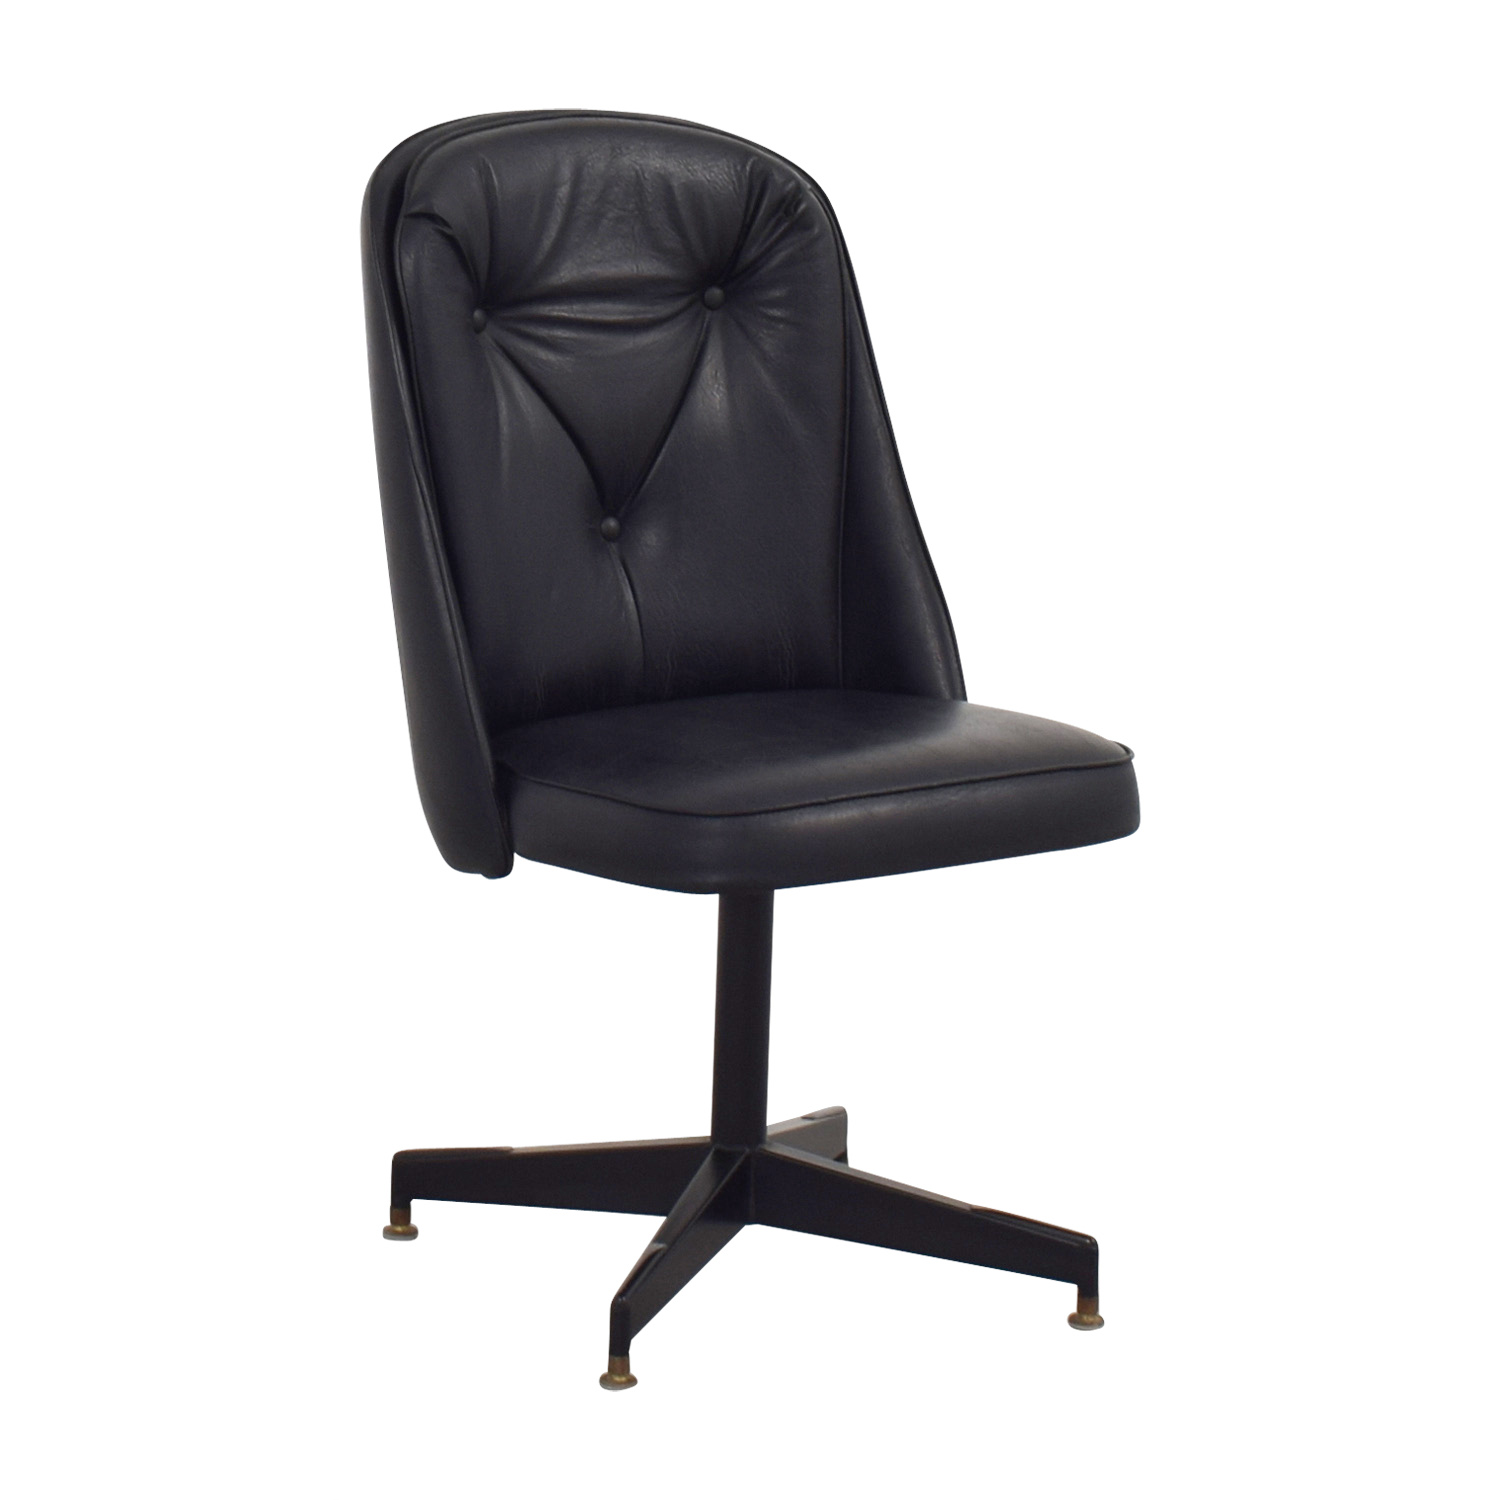 62% Off  Black Leather Swivel Office Desk Chair  Chairs. Wooden Desk Ikea. Seat Cushion For Desk Chair. Bedroom Tables. 4 Person Desk. File Drawer Rails. Folding Poker Tables. Center Table Decor. Drawer Glides